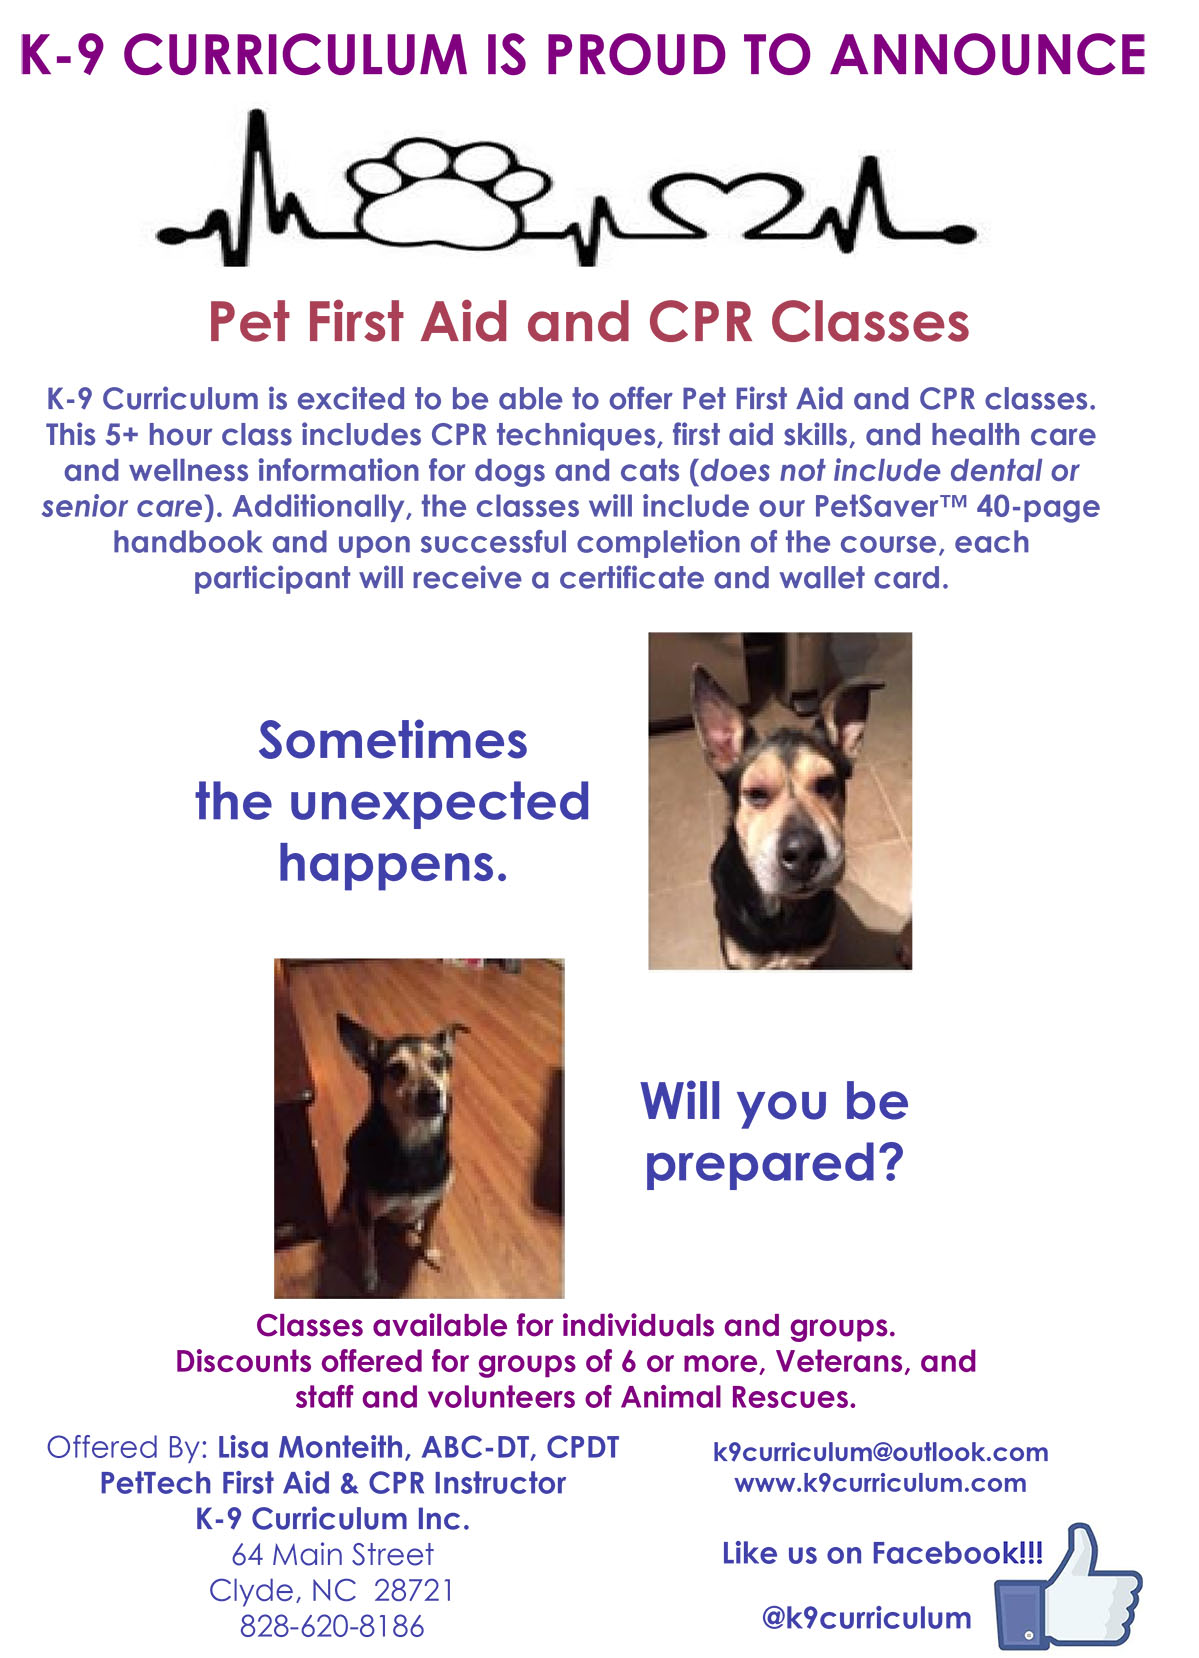 Pet First Aid and CPR Classes